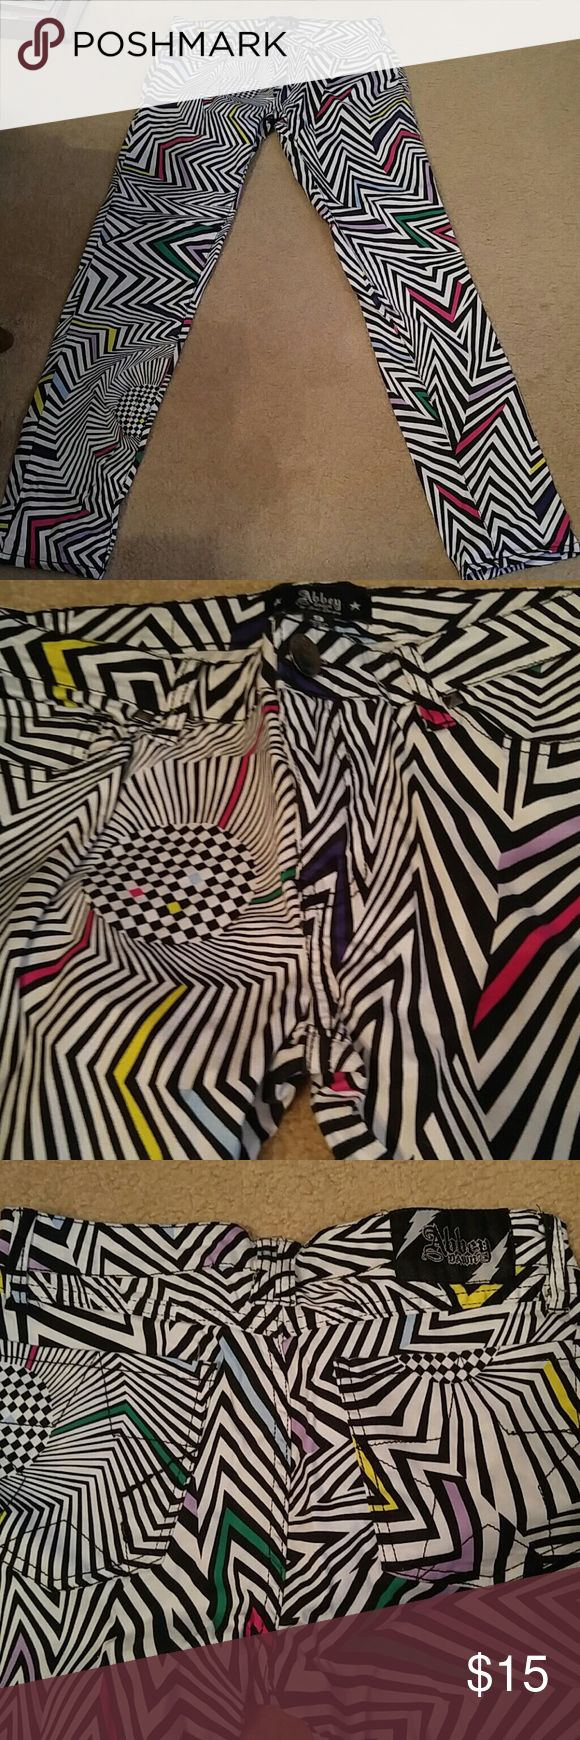 """Abbey Dawn Avril Levigne Psychedelic Pants Sz 9 Abbey Dawn by Avril Levigne Psychedelic Pants.  Sz 9. Excellent preowned! Measurements:  Waist 29"""" Rise 8"""" Inseam 29"""" Abbey Dawn Pants Skinny"""